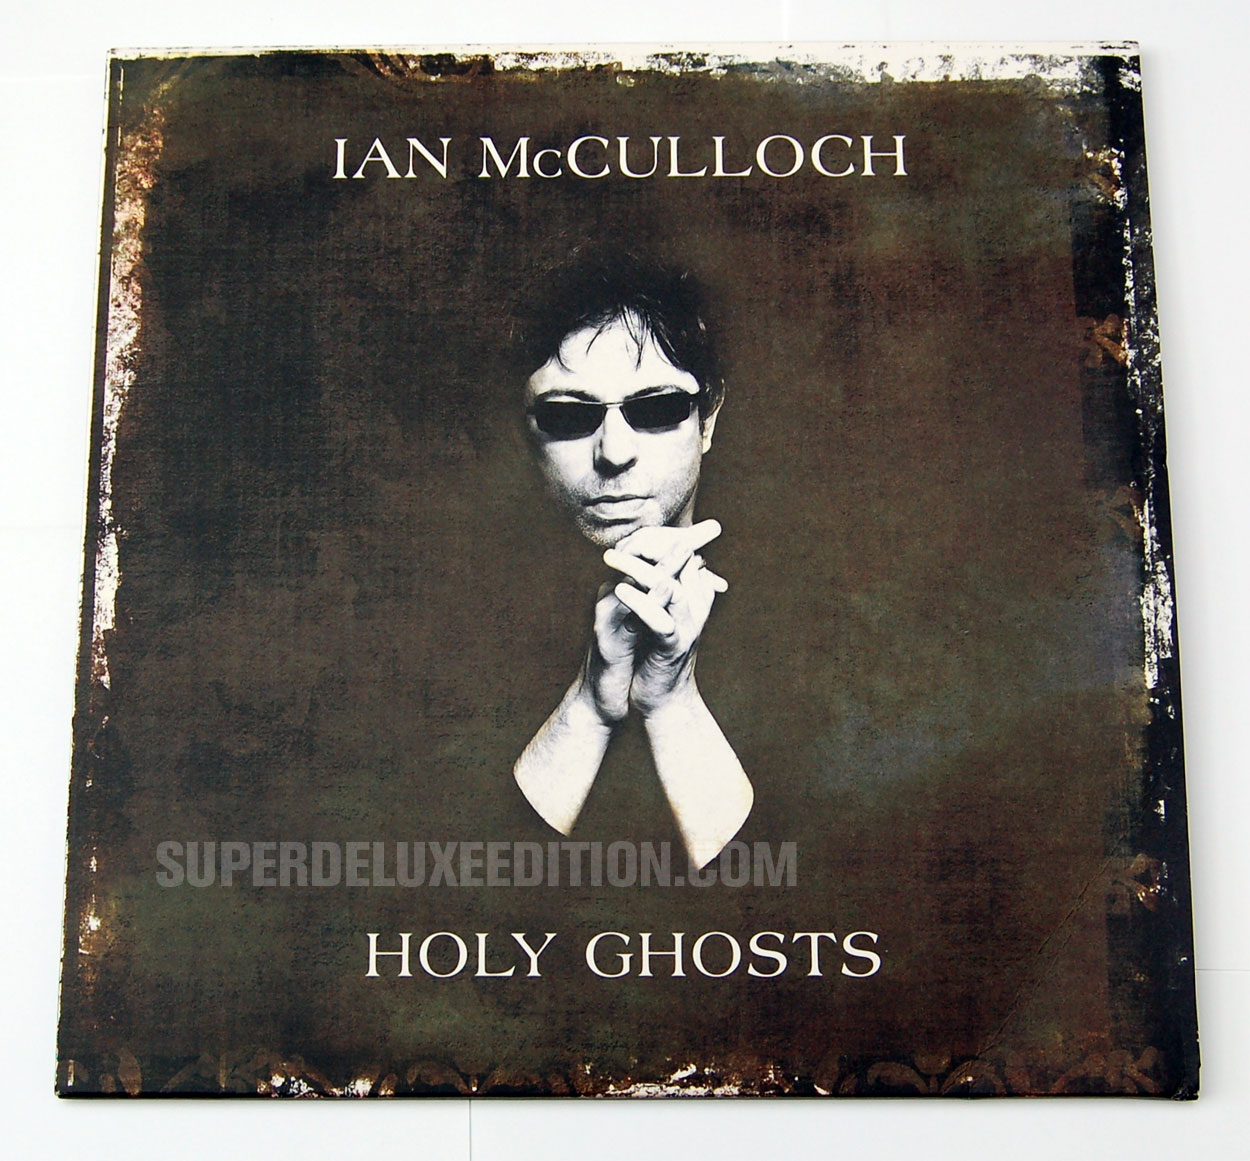 First Pictures / Ian McCulloch Holy Ghosts triple yellow vinyl